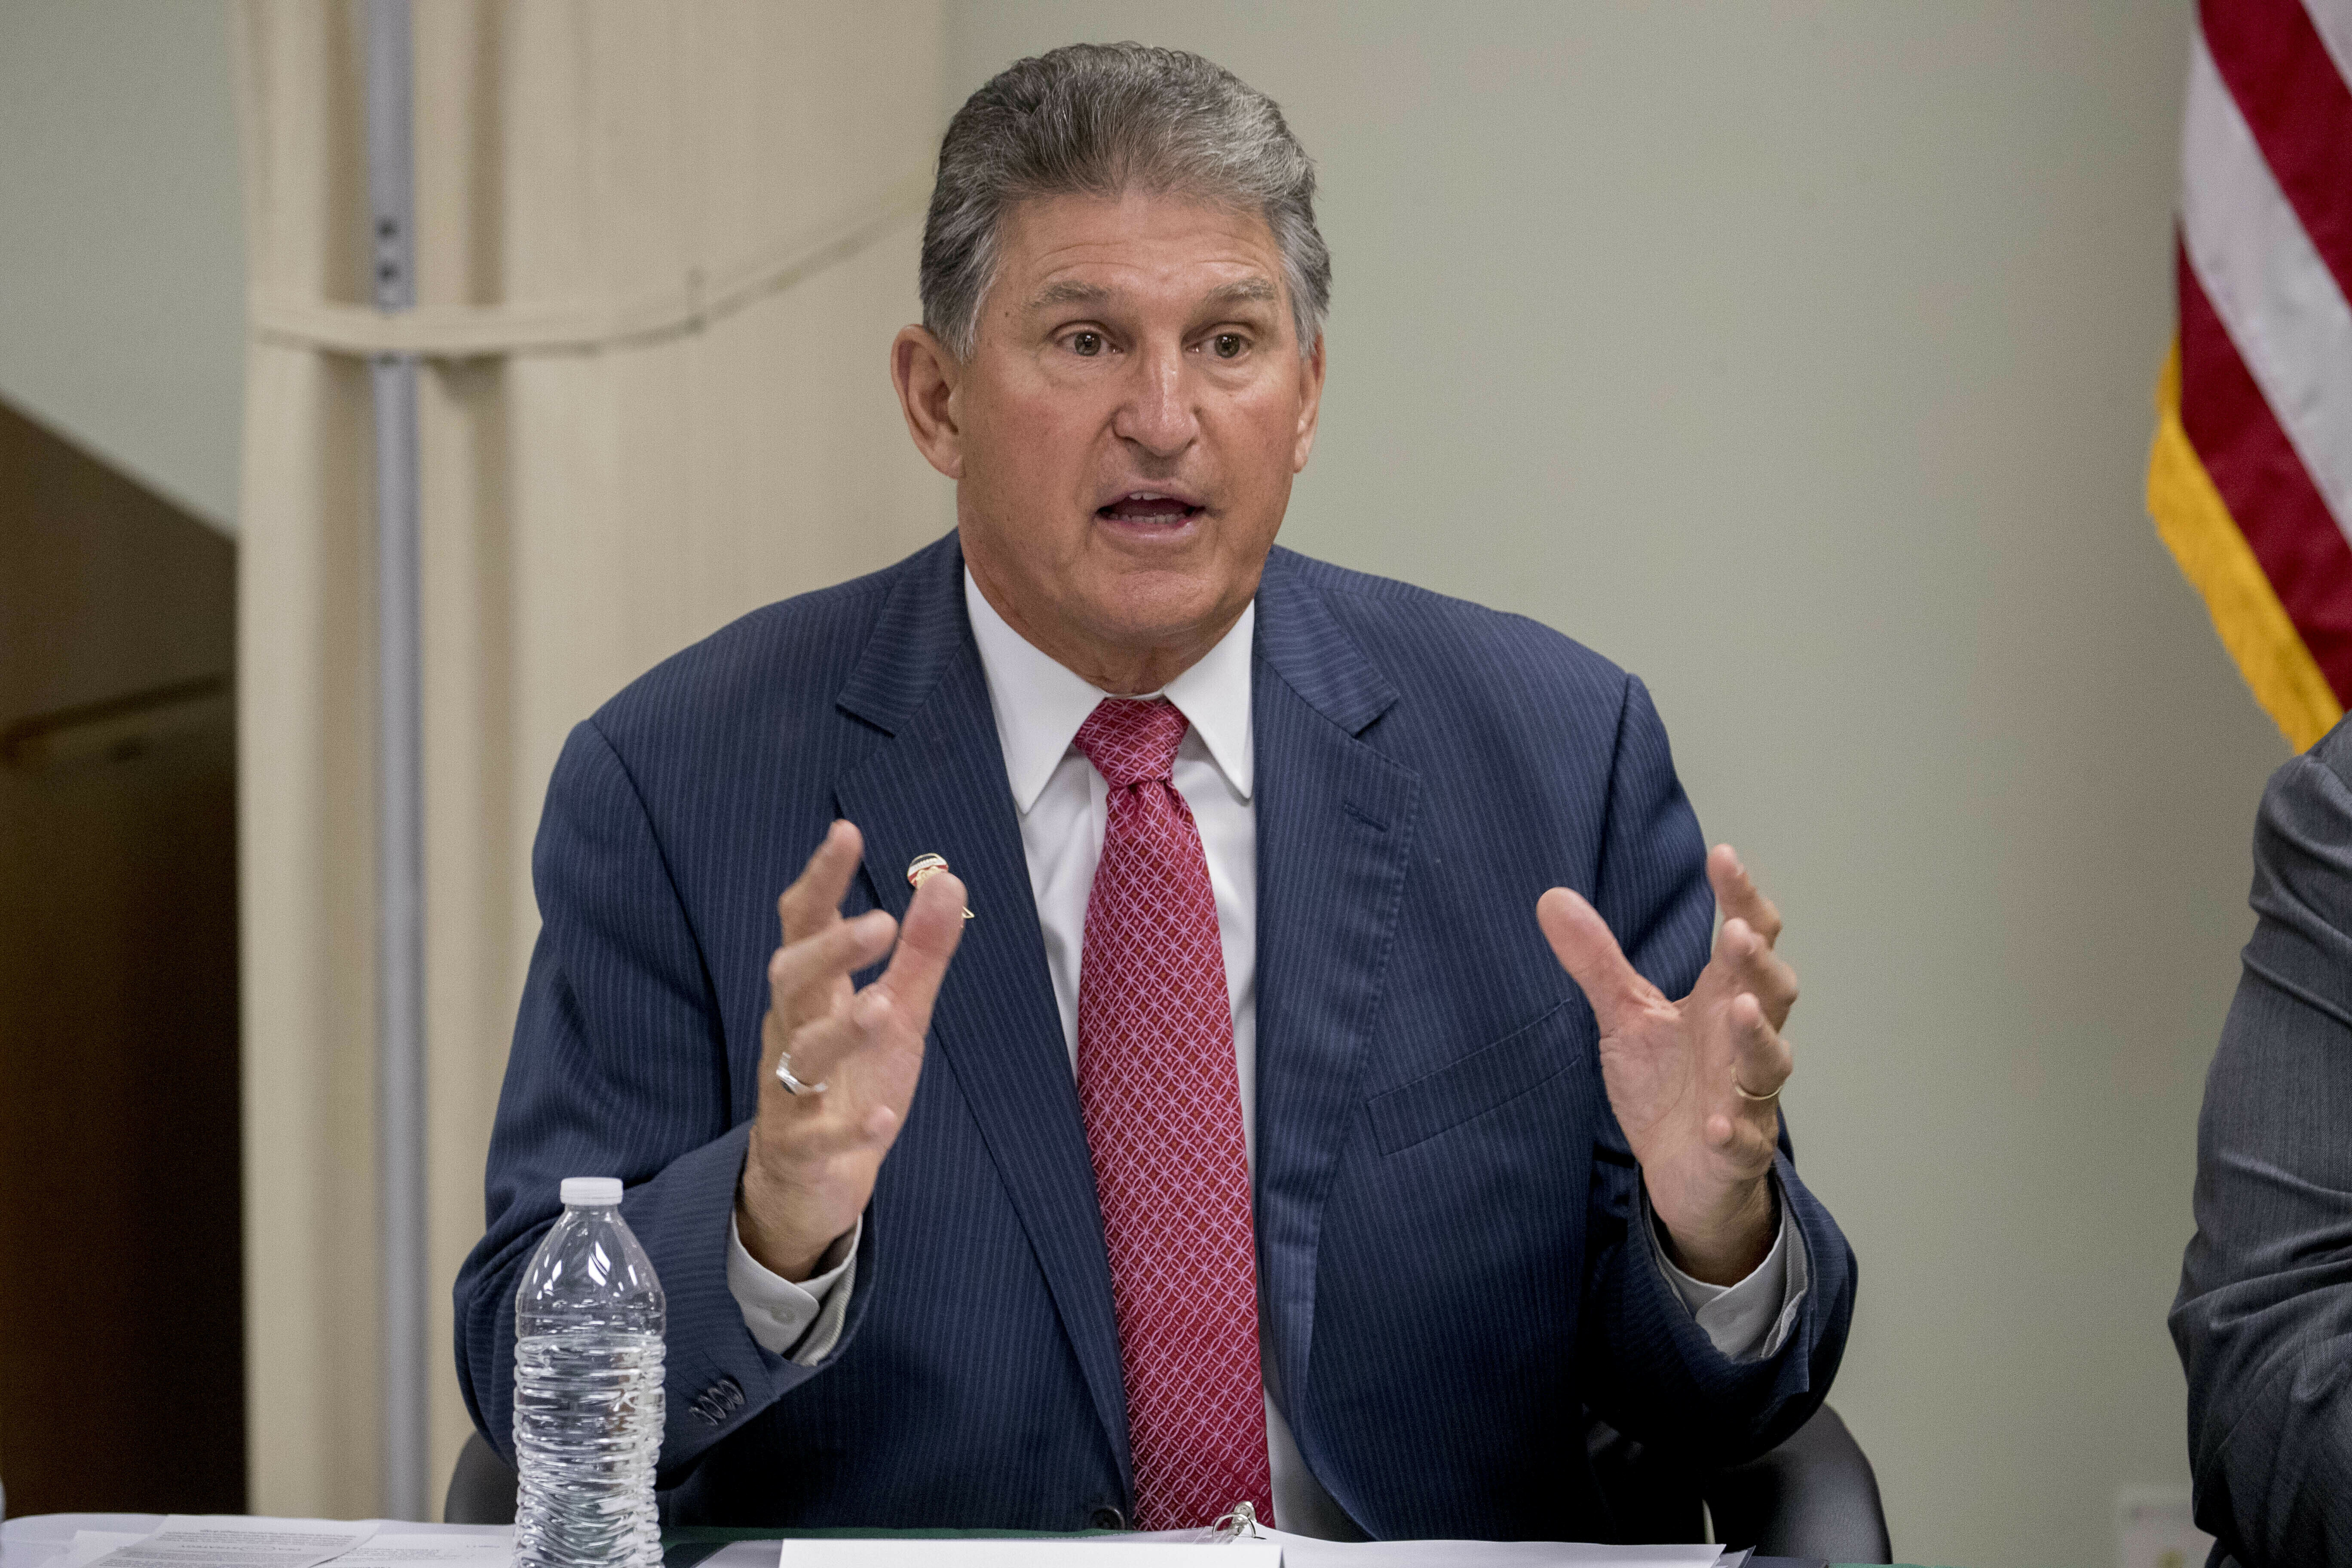 Manchin Passes on Run for West Virginia Governor, Says He'll Stay in Senate